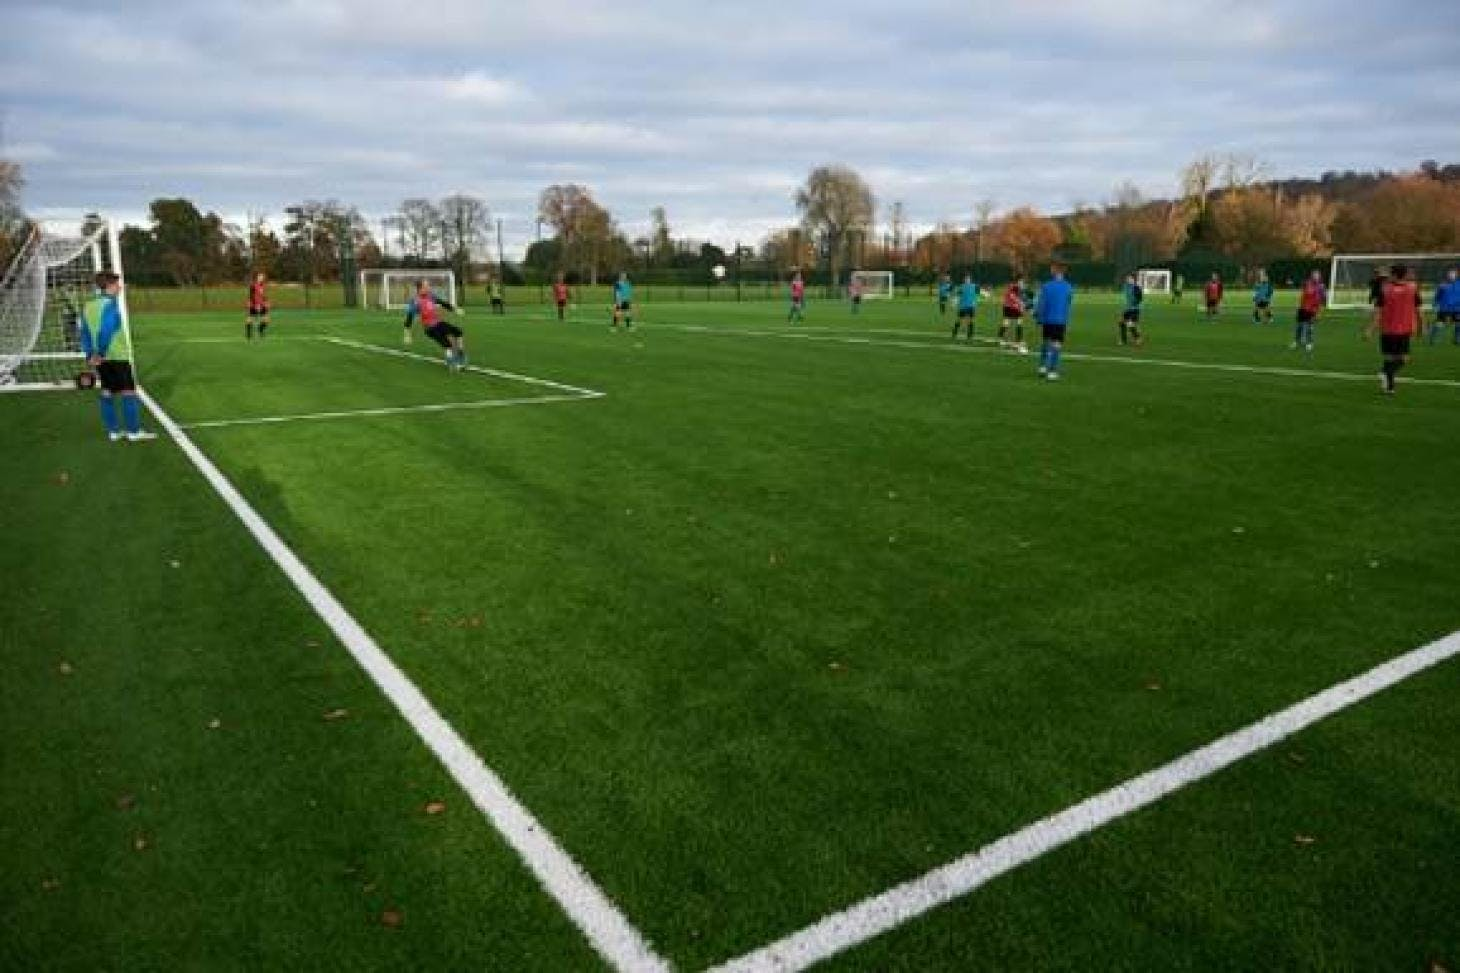 Bisham Abbey National Sports Centre 11 a side | 3G Astroturf football pitch